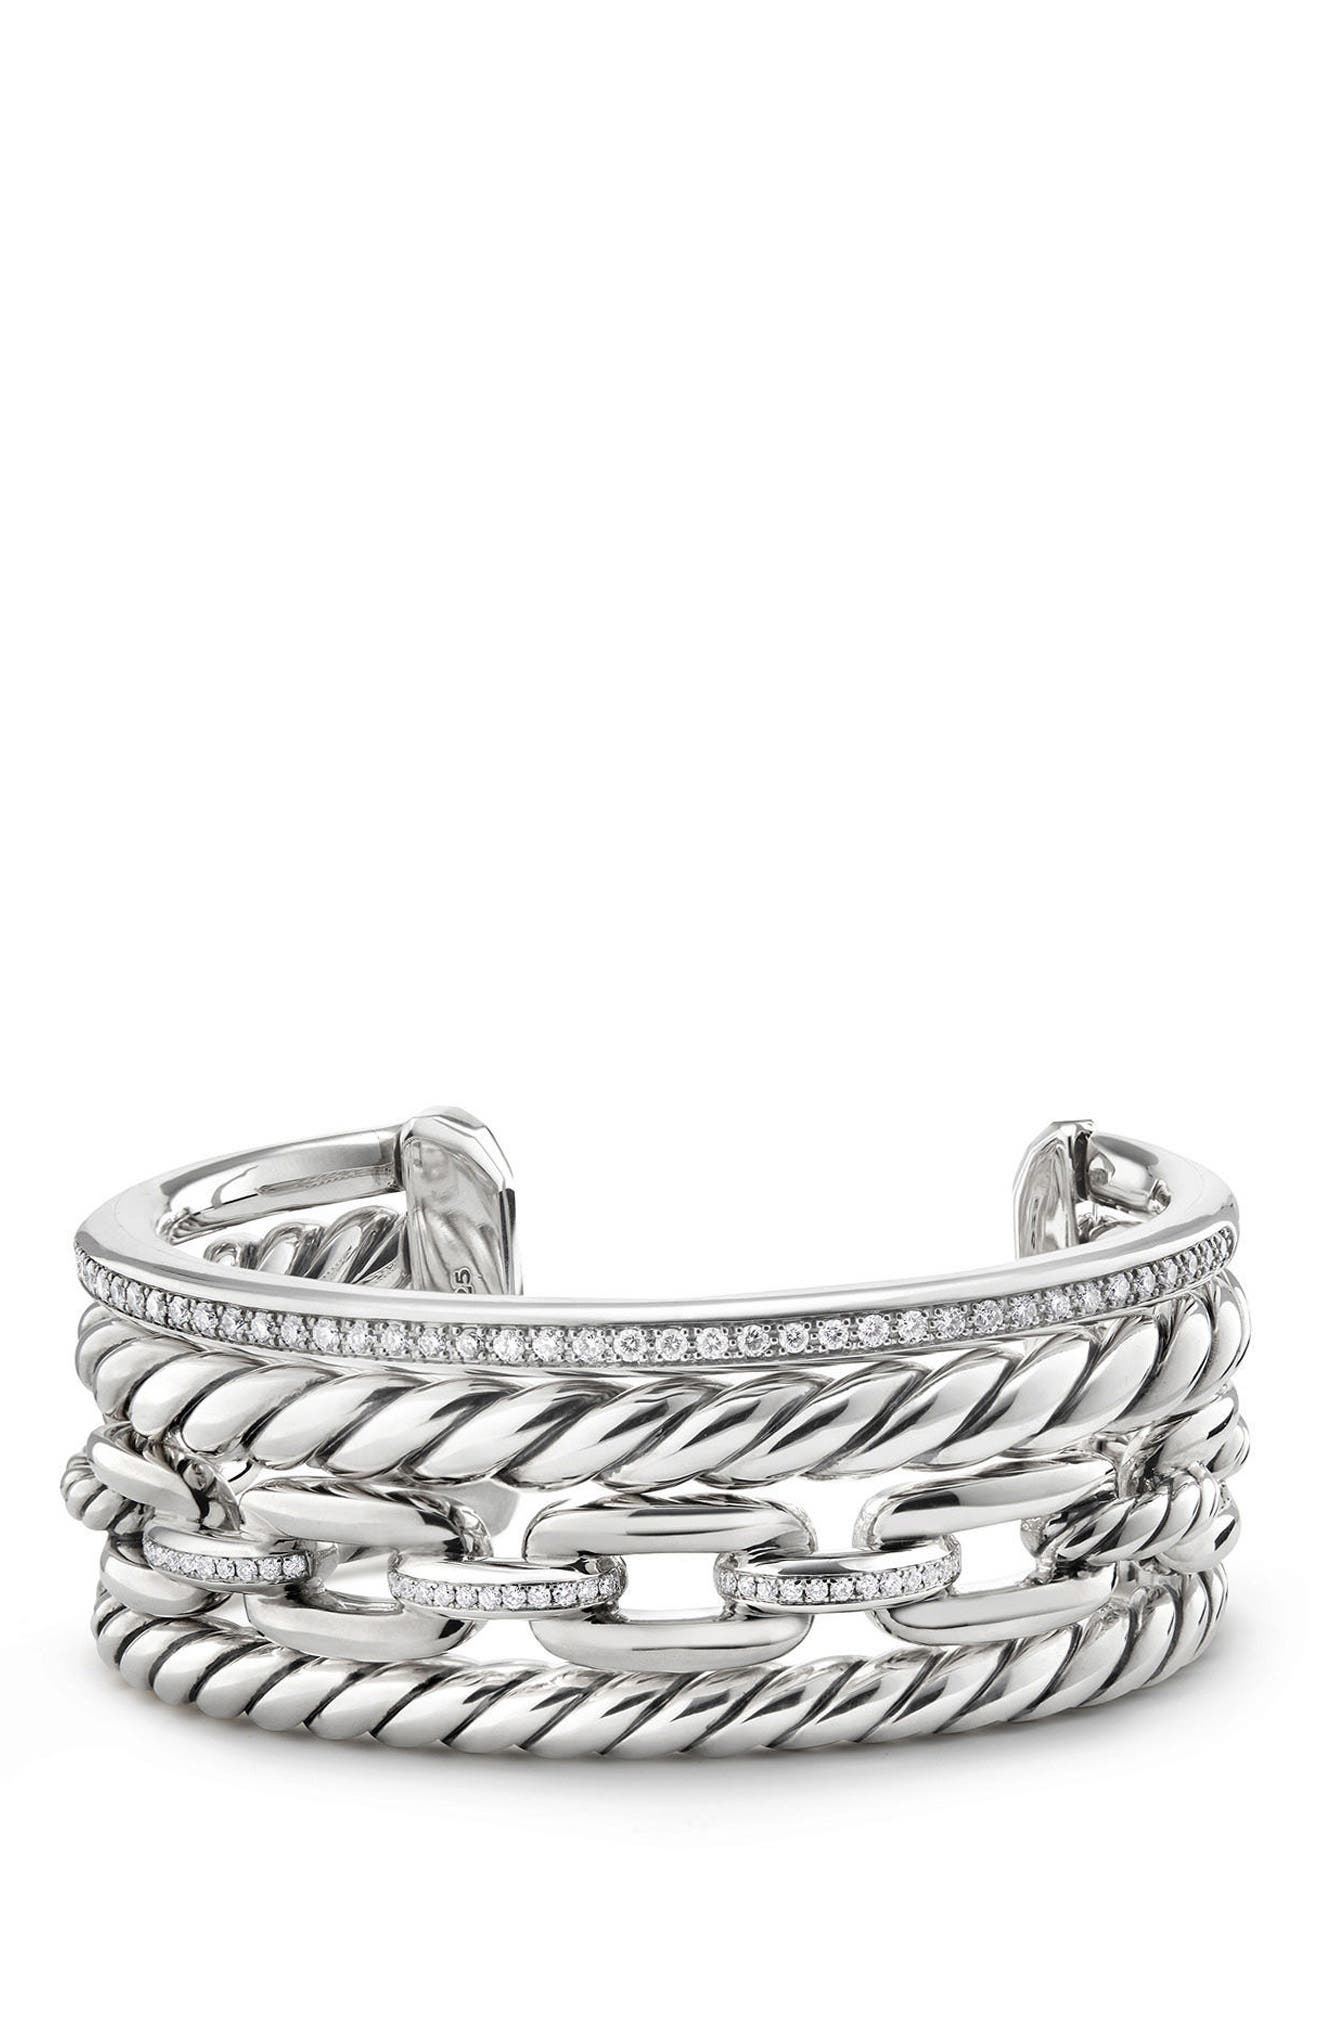 Main Image - David Yurman Wellesley Link Cuff with Diamonds, 27mm